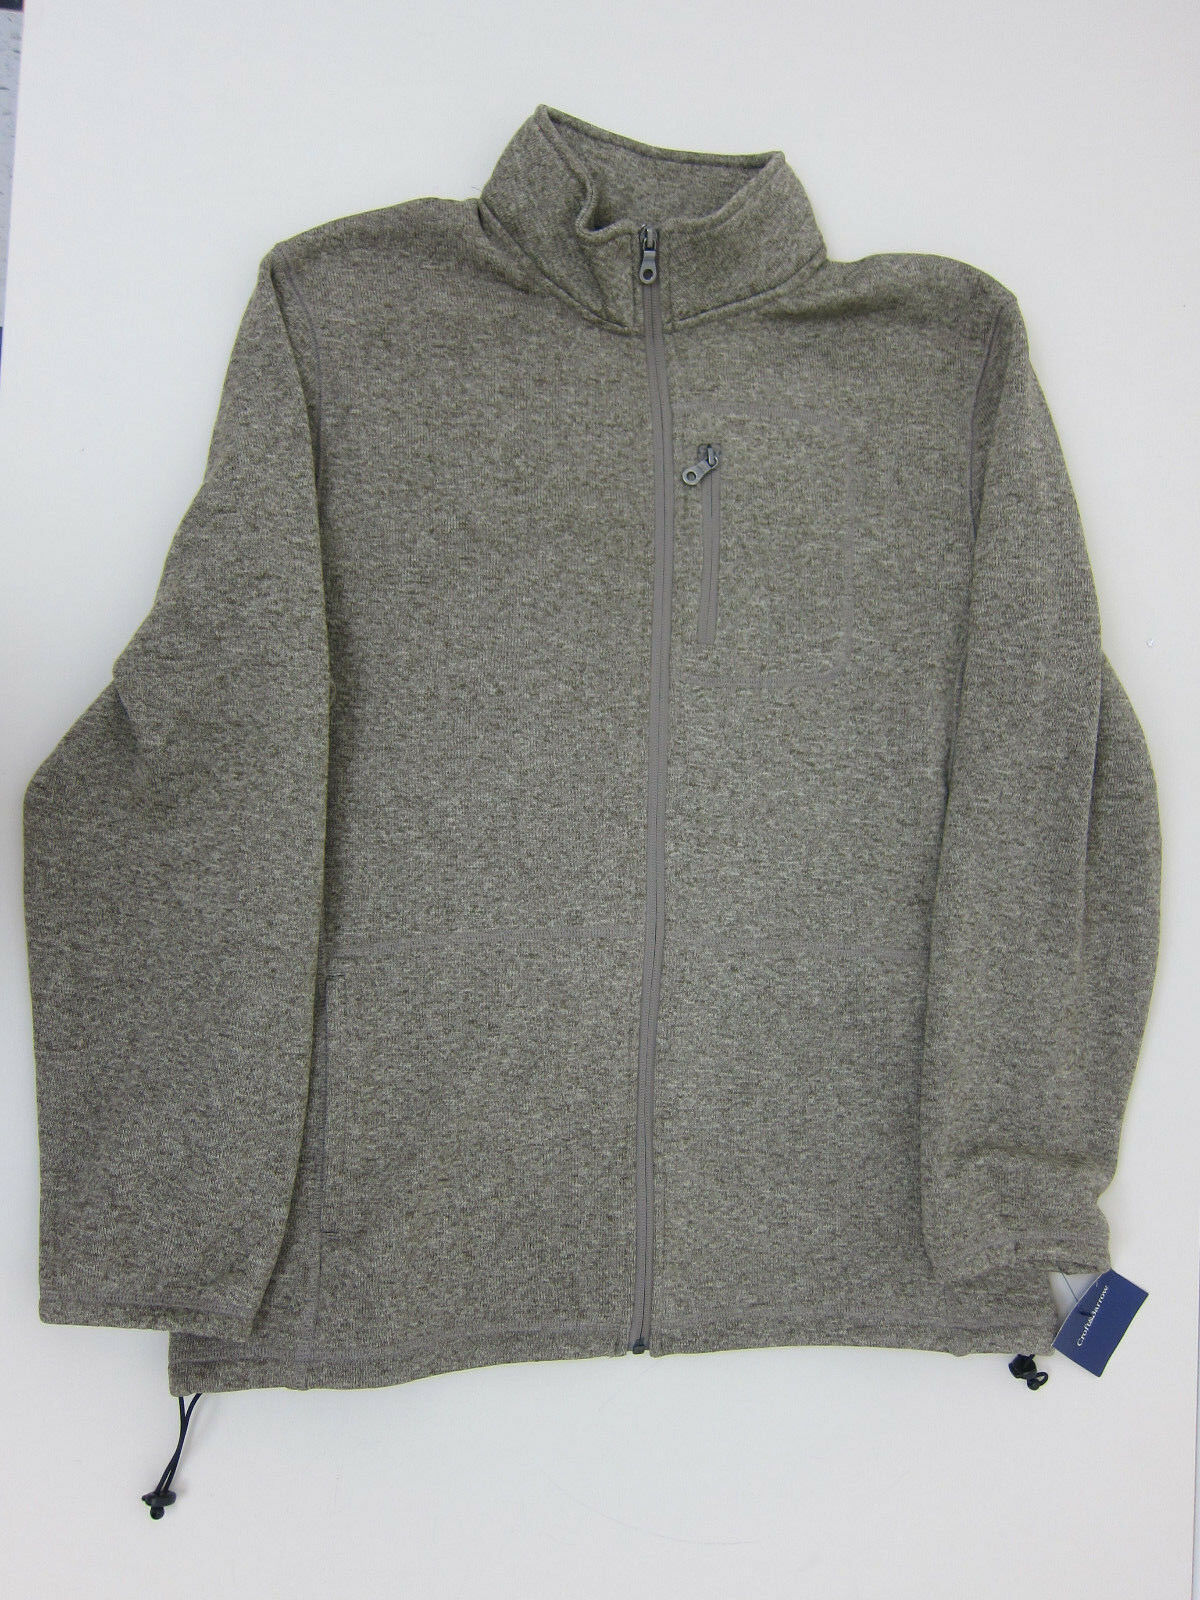 Croft & Barrow Full Zip Sweater - Mens Large - Weathered Brown - NWT